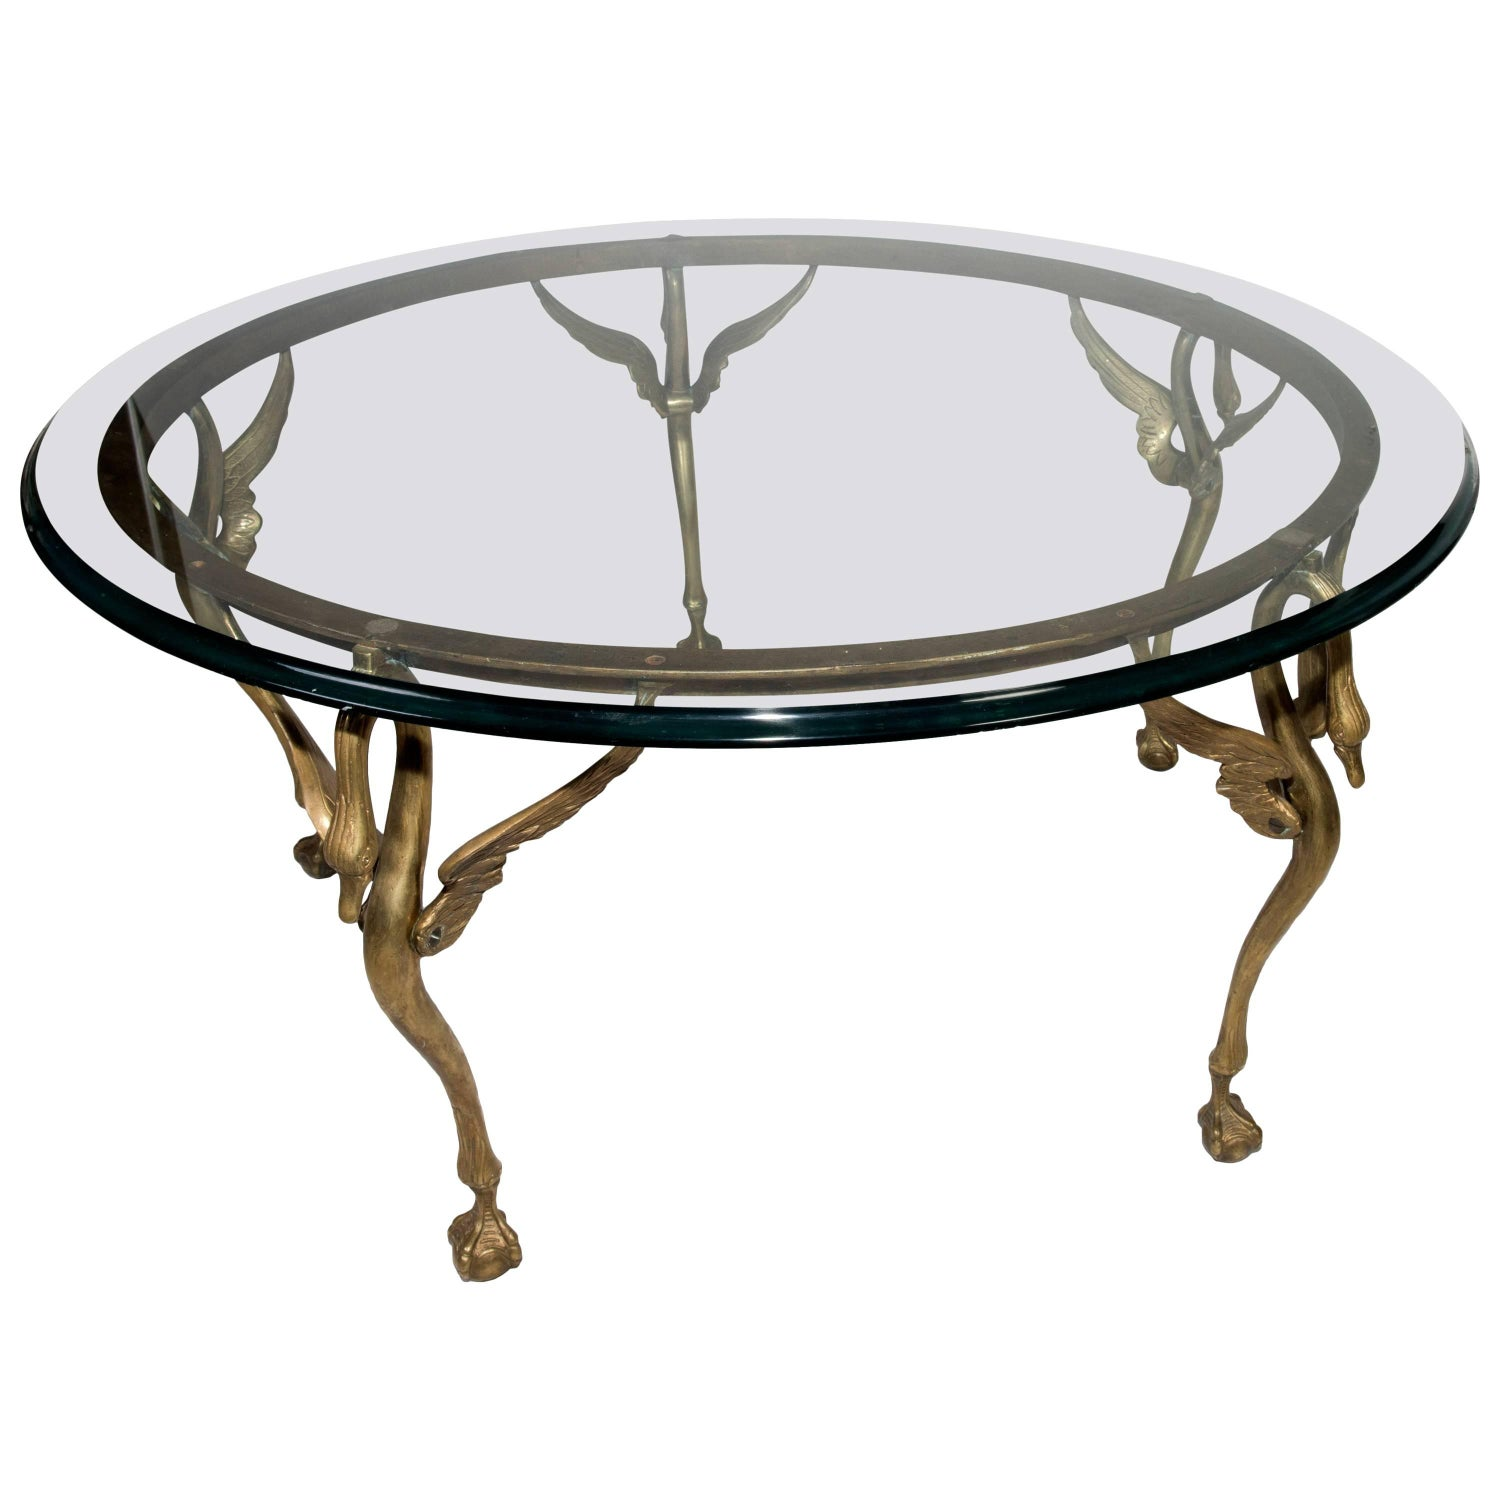 Art Deco Brass and Glass Coffee Table at 1stdibs